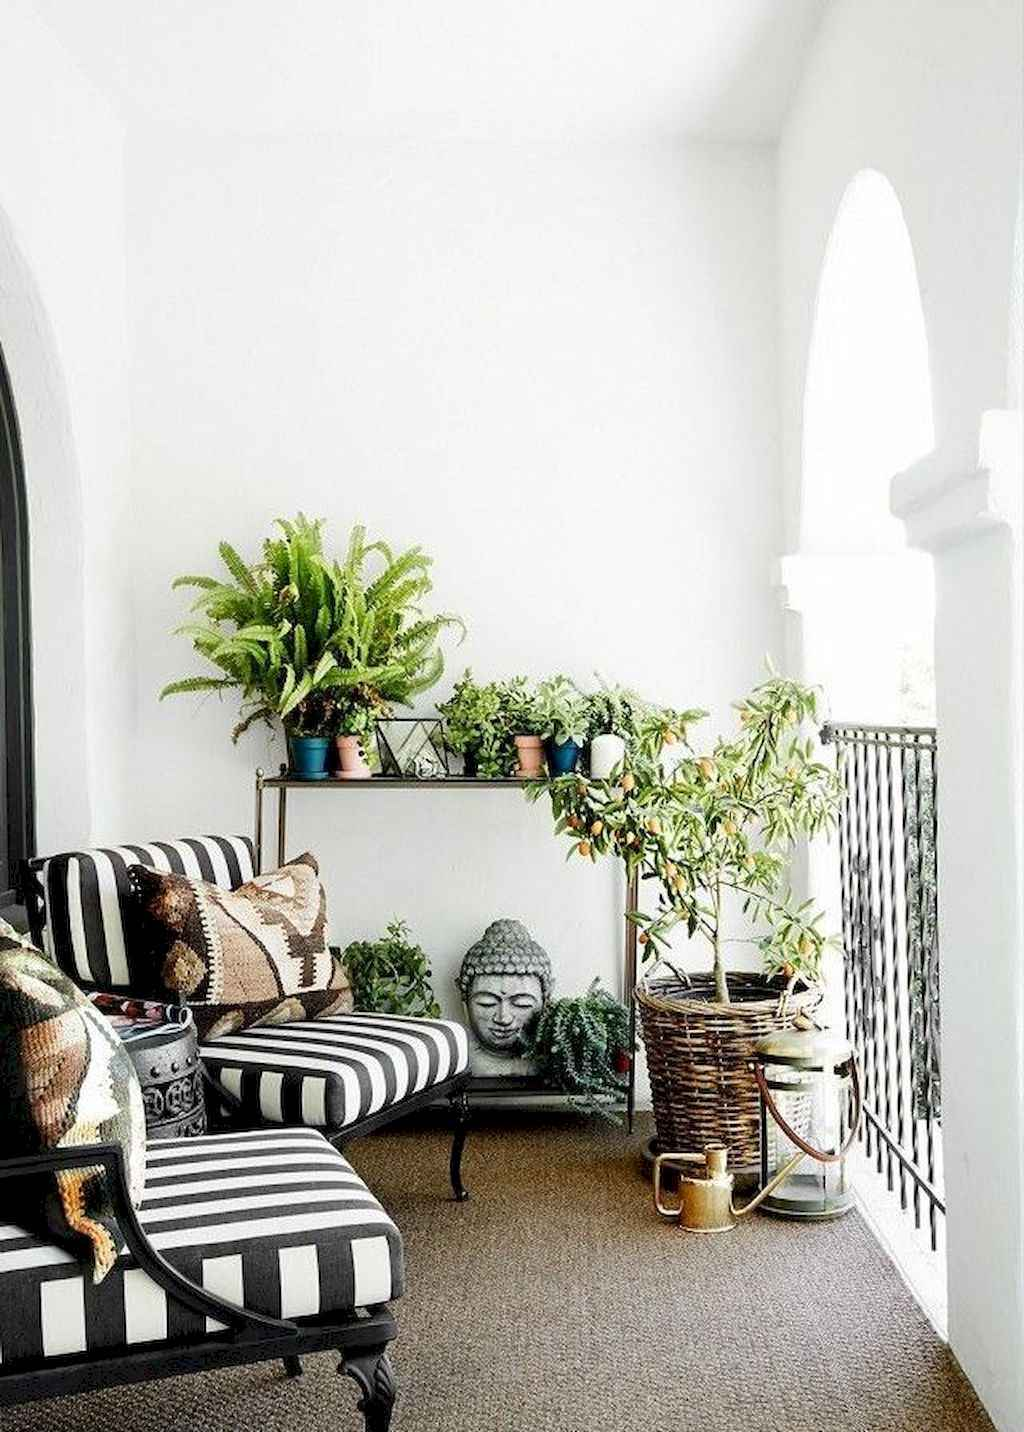 Small Balcony Photoshoot Ideas